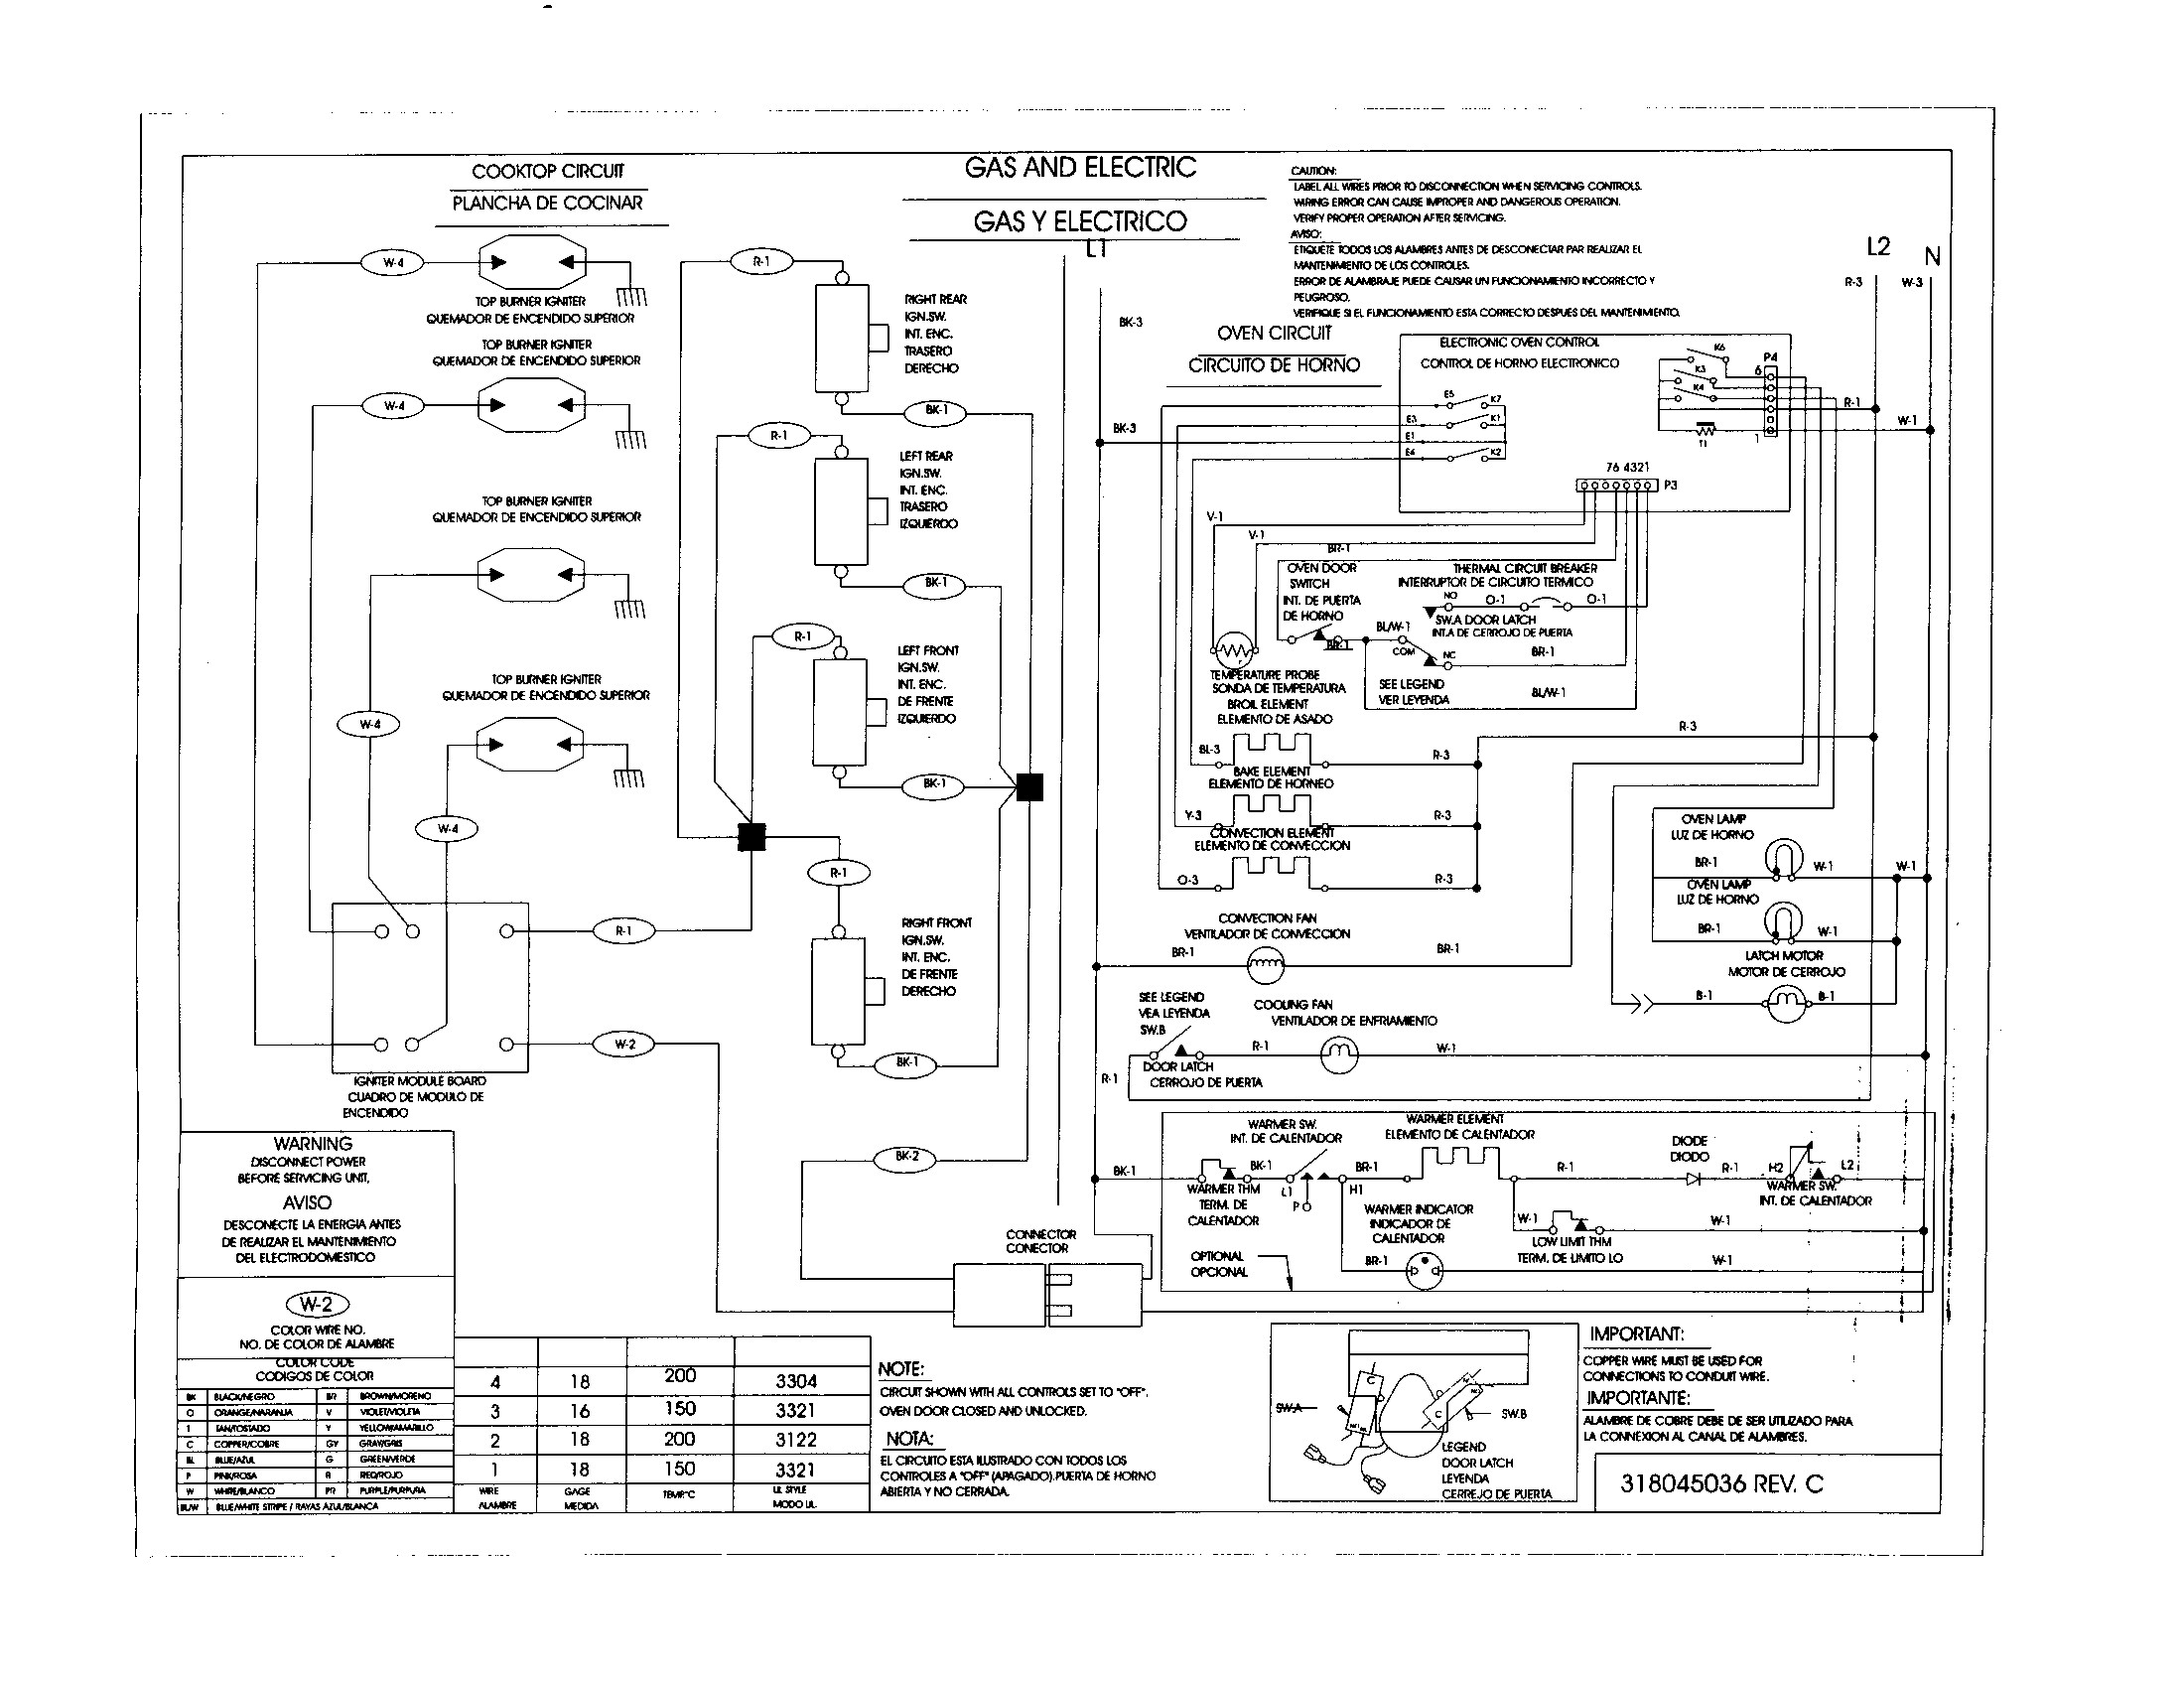 wiring diagram ge profile diagram schematic rh omariwo co ge microwave oven wiring diagram ge microwave oven wiring diagram